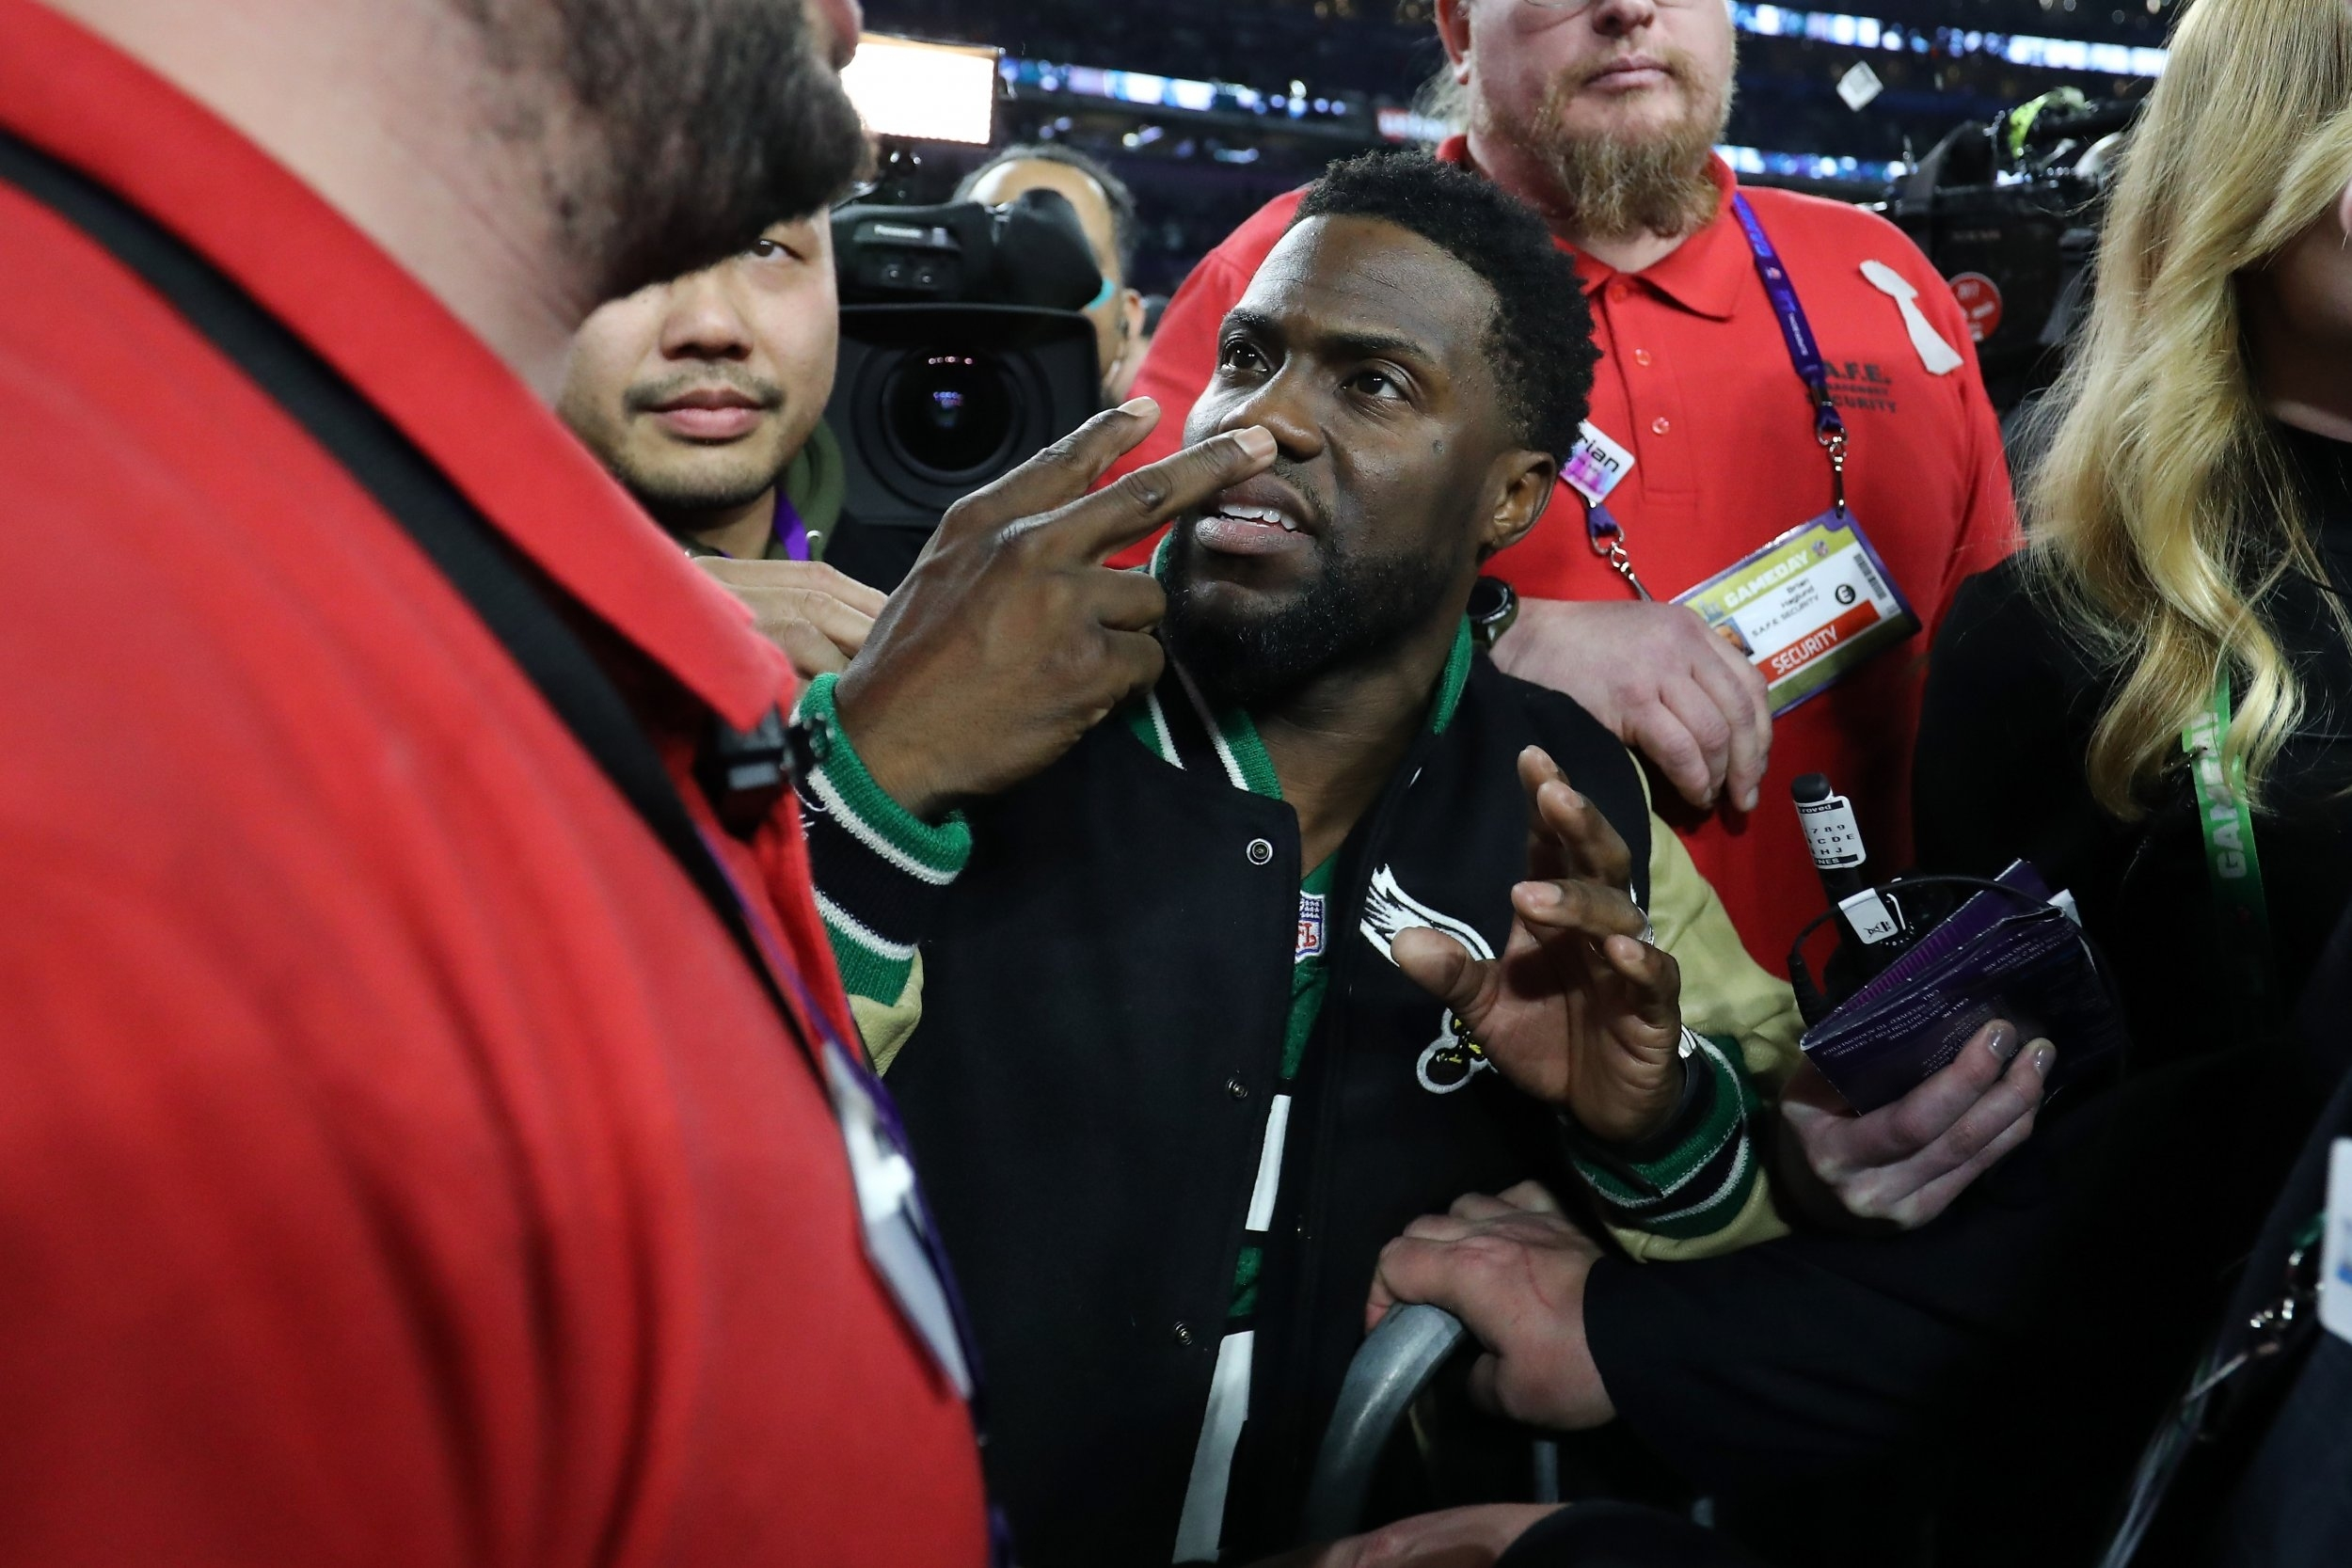 Watch Kevin Hart Instagram Video After Getting Drunk, Trying pertaining to Kevin Hart Super Bowl